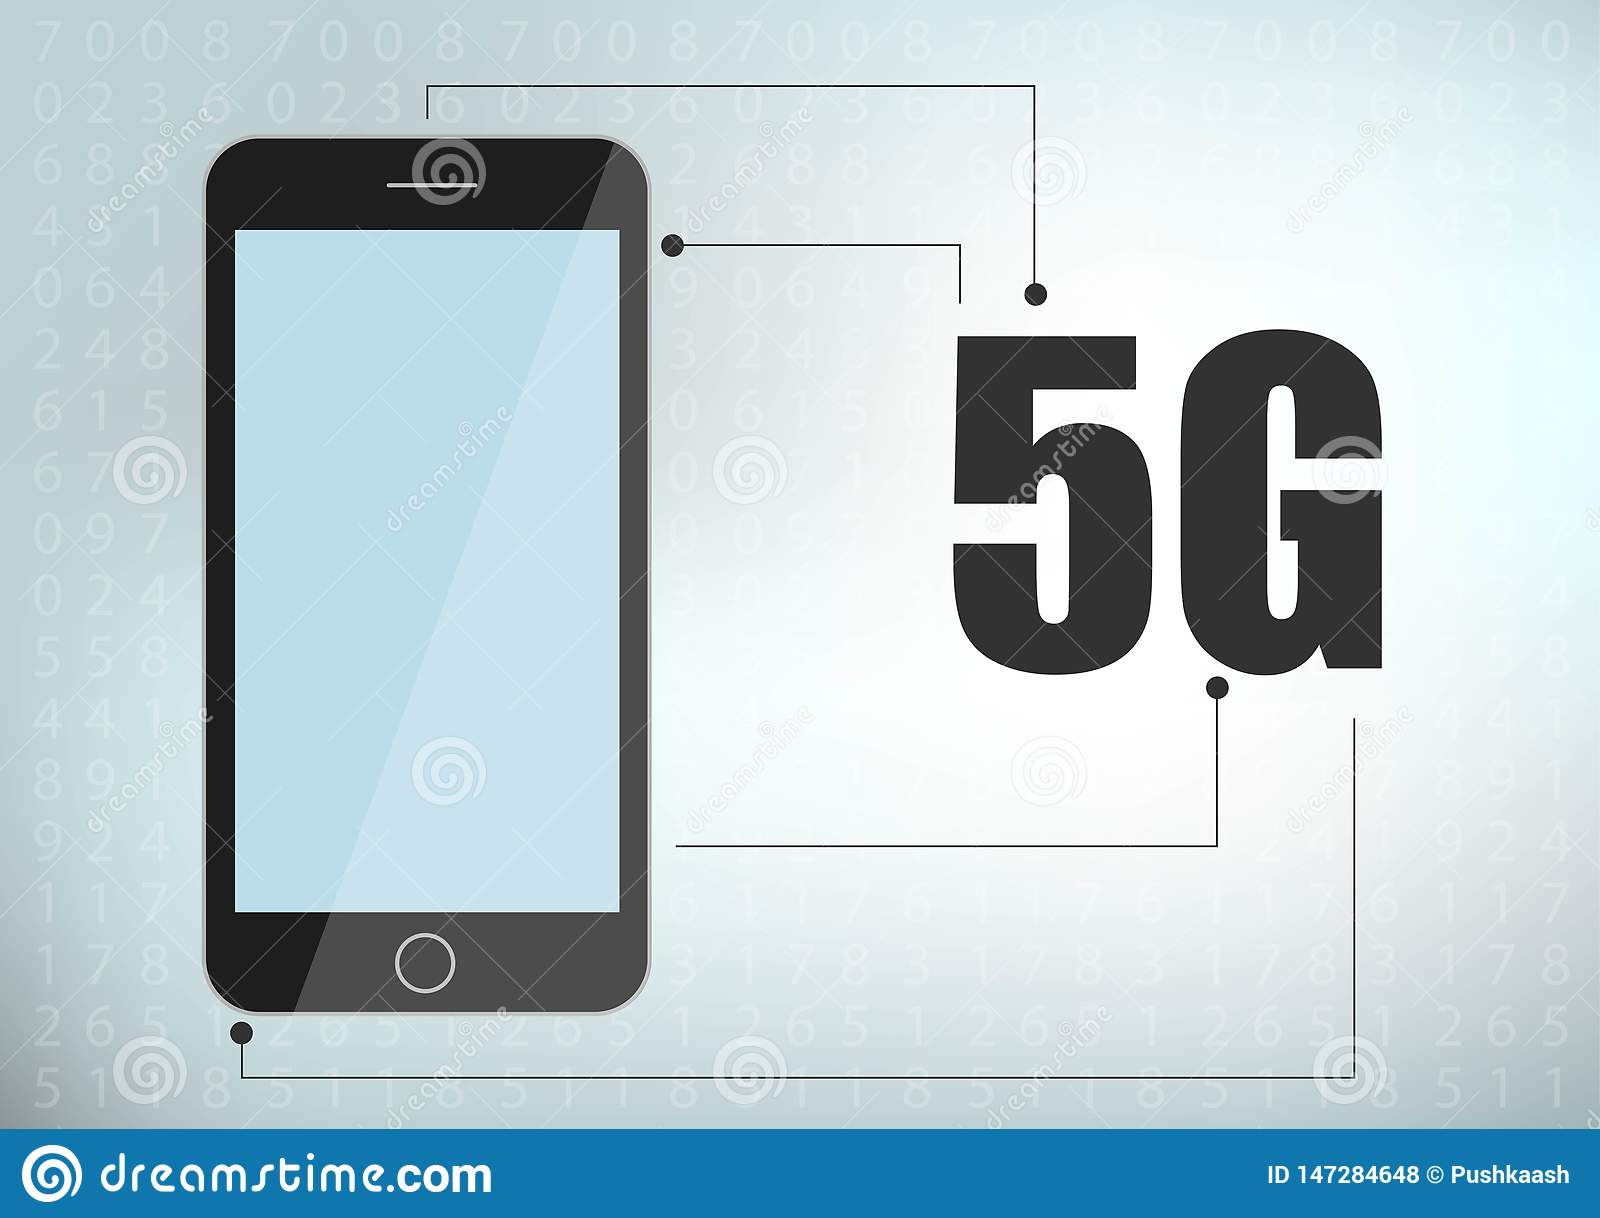 5G network icon and smartphone. 5G new wireless internet wifi connection. Fifth innovative generation of the global high speed